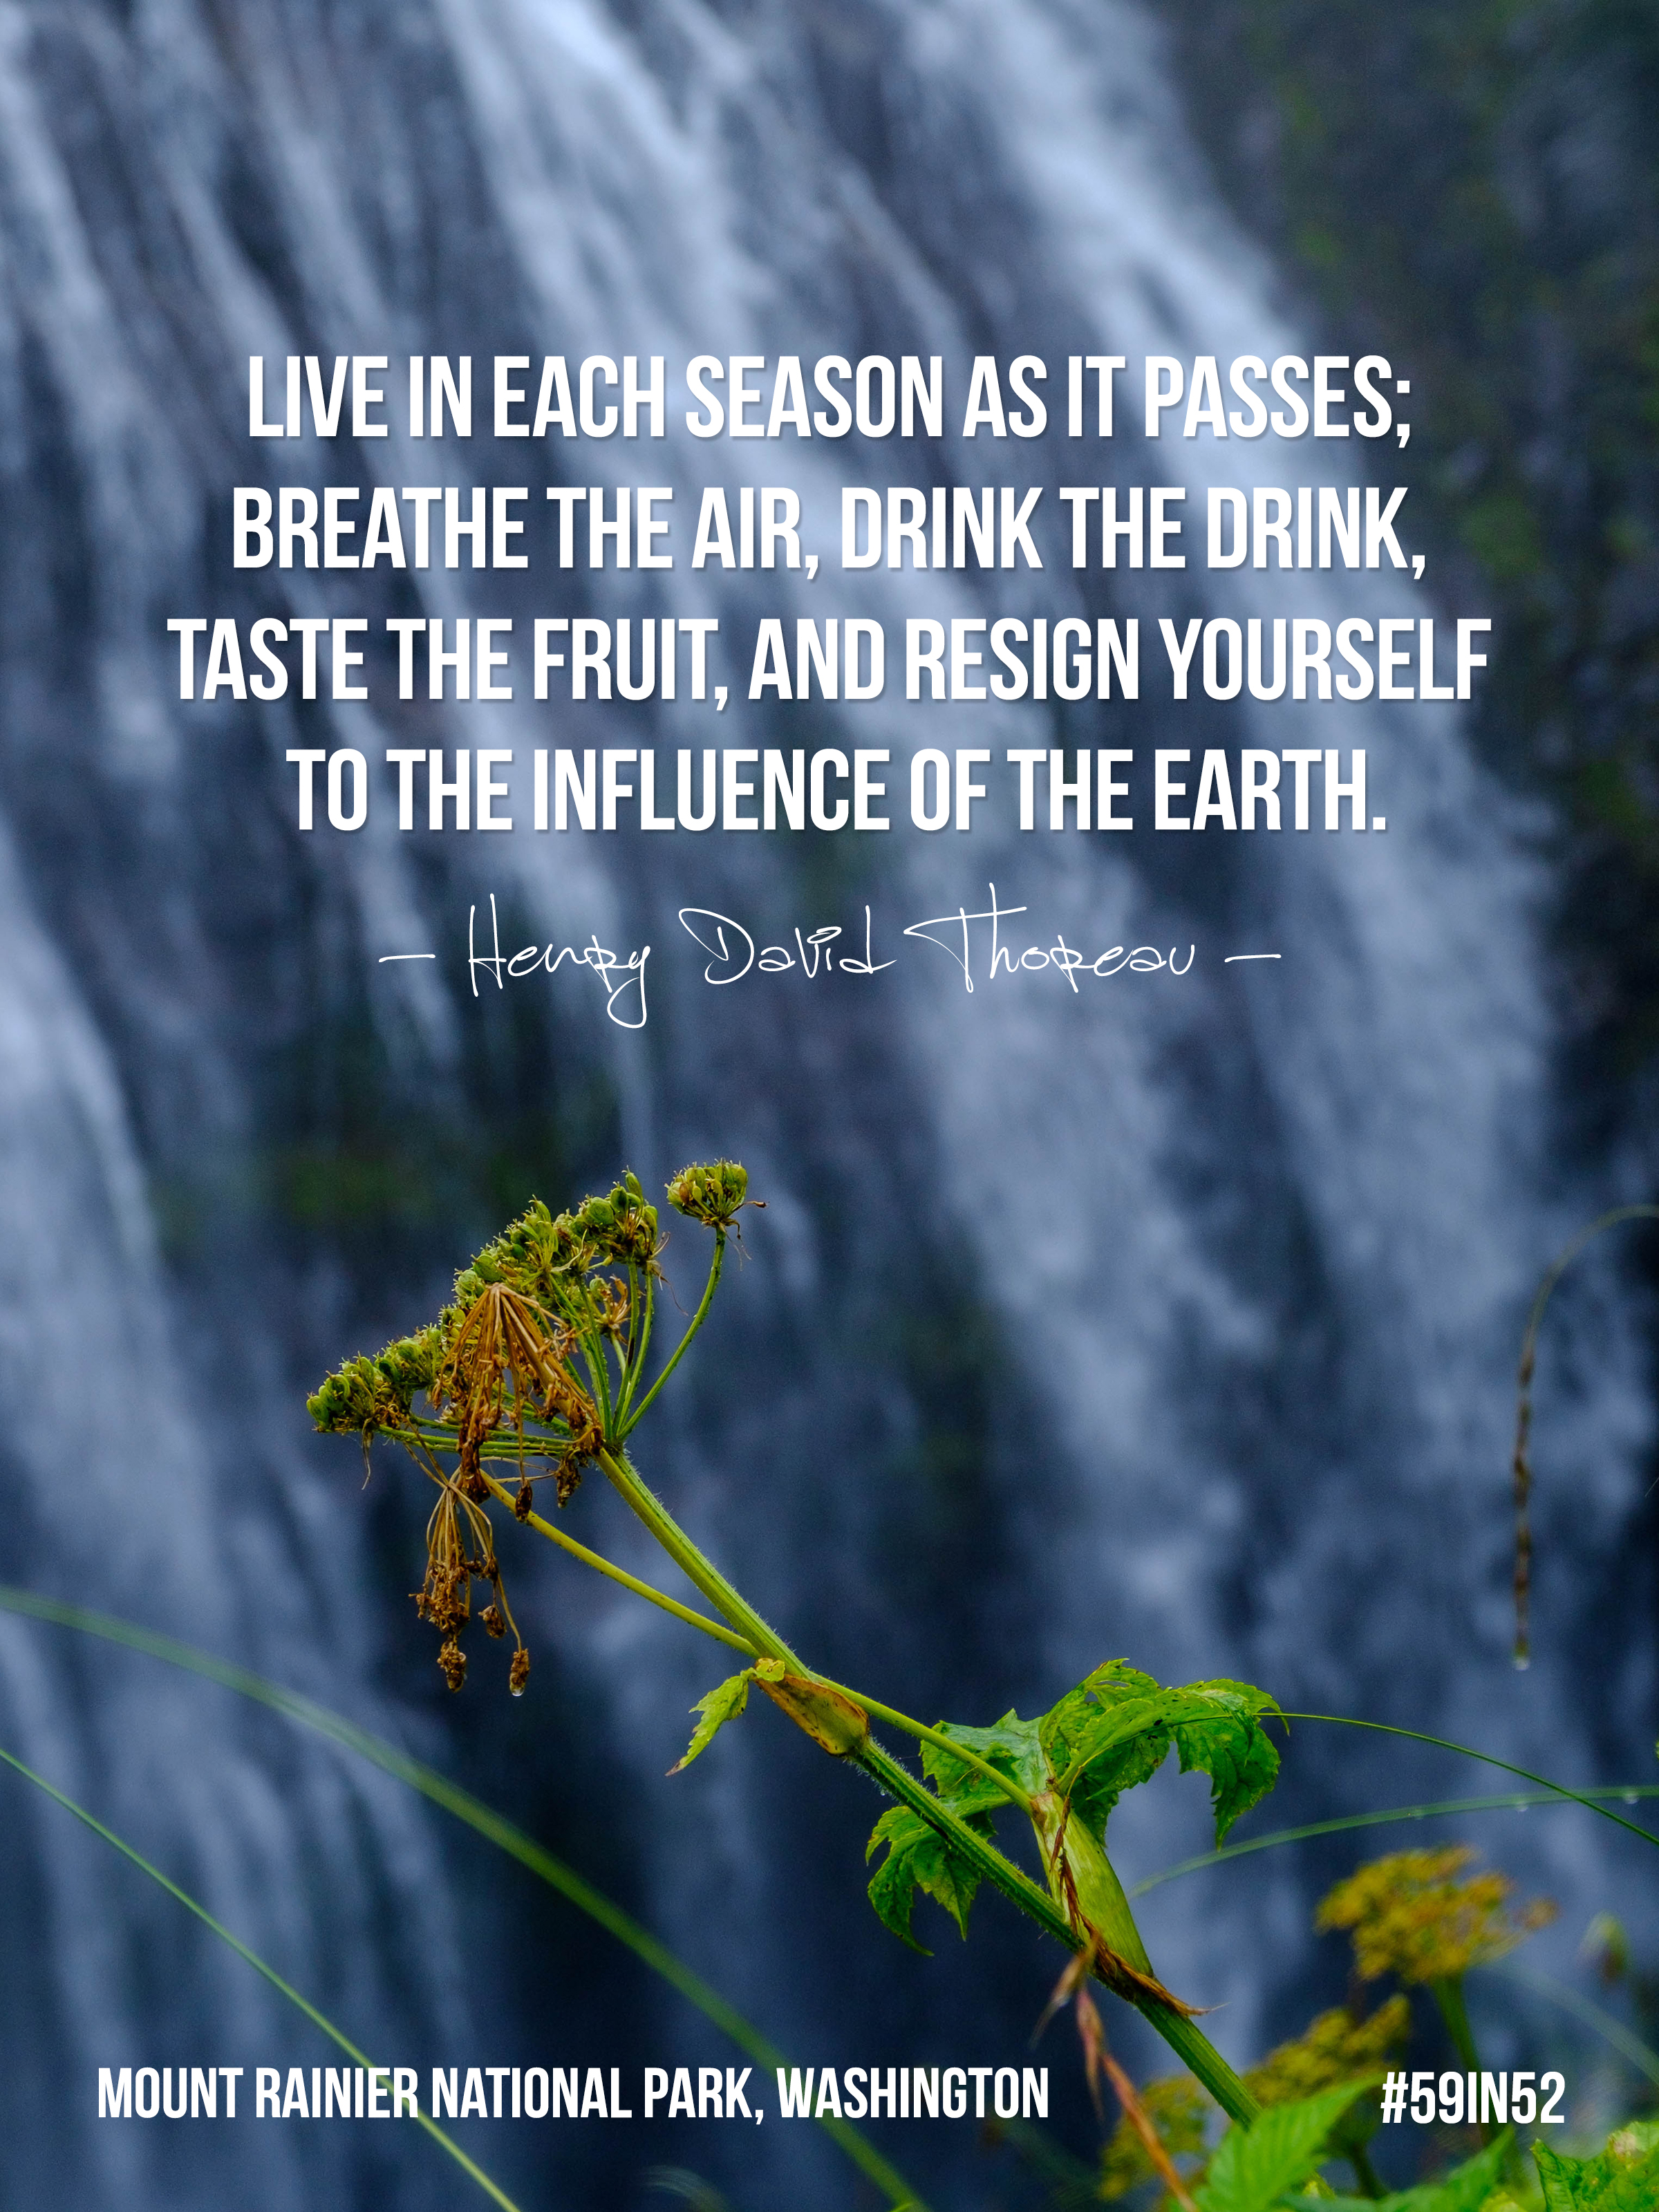 'Live each season as it passes; breathe the air, drink the drink, taste the fruit, and resign yourself to the influence of the Earth.' - Henry David Thoreau